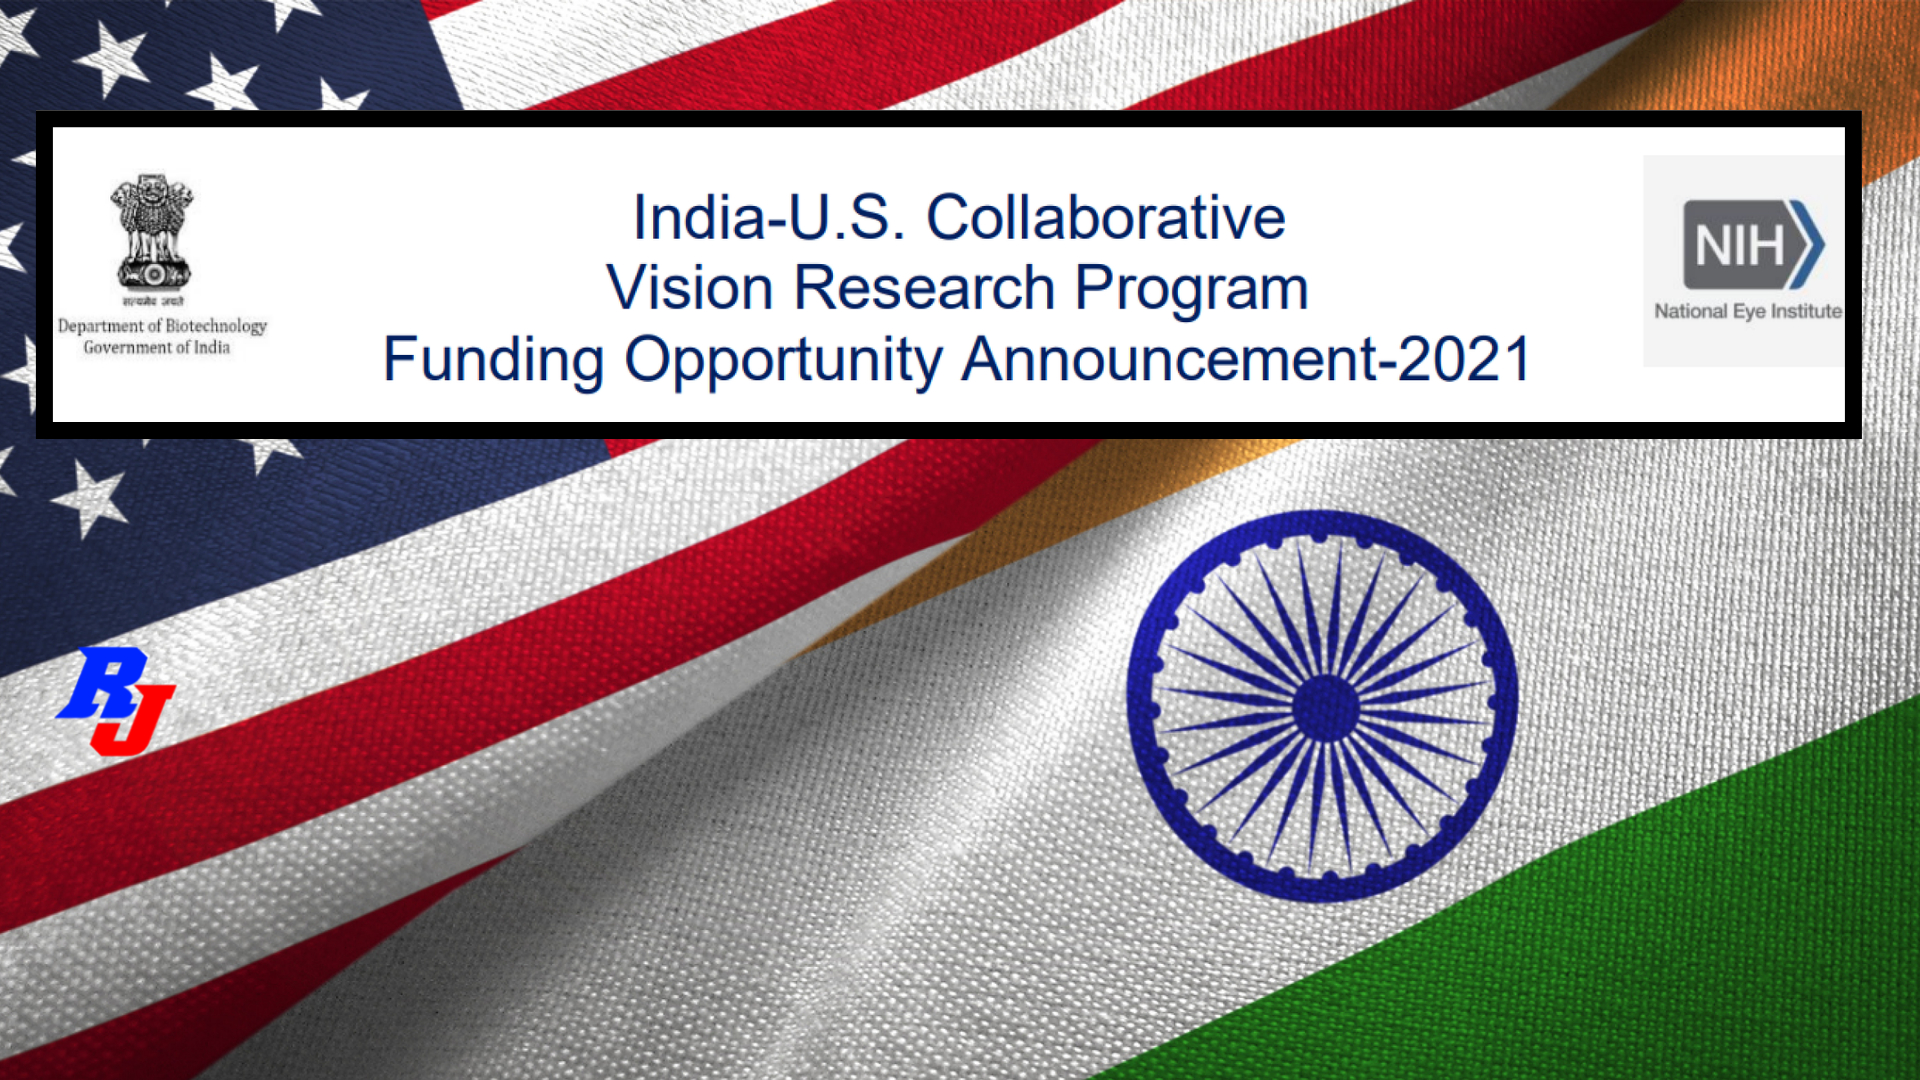 Research Project Grant by India-U.S. Collaborative Vision Research Program